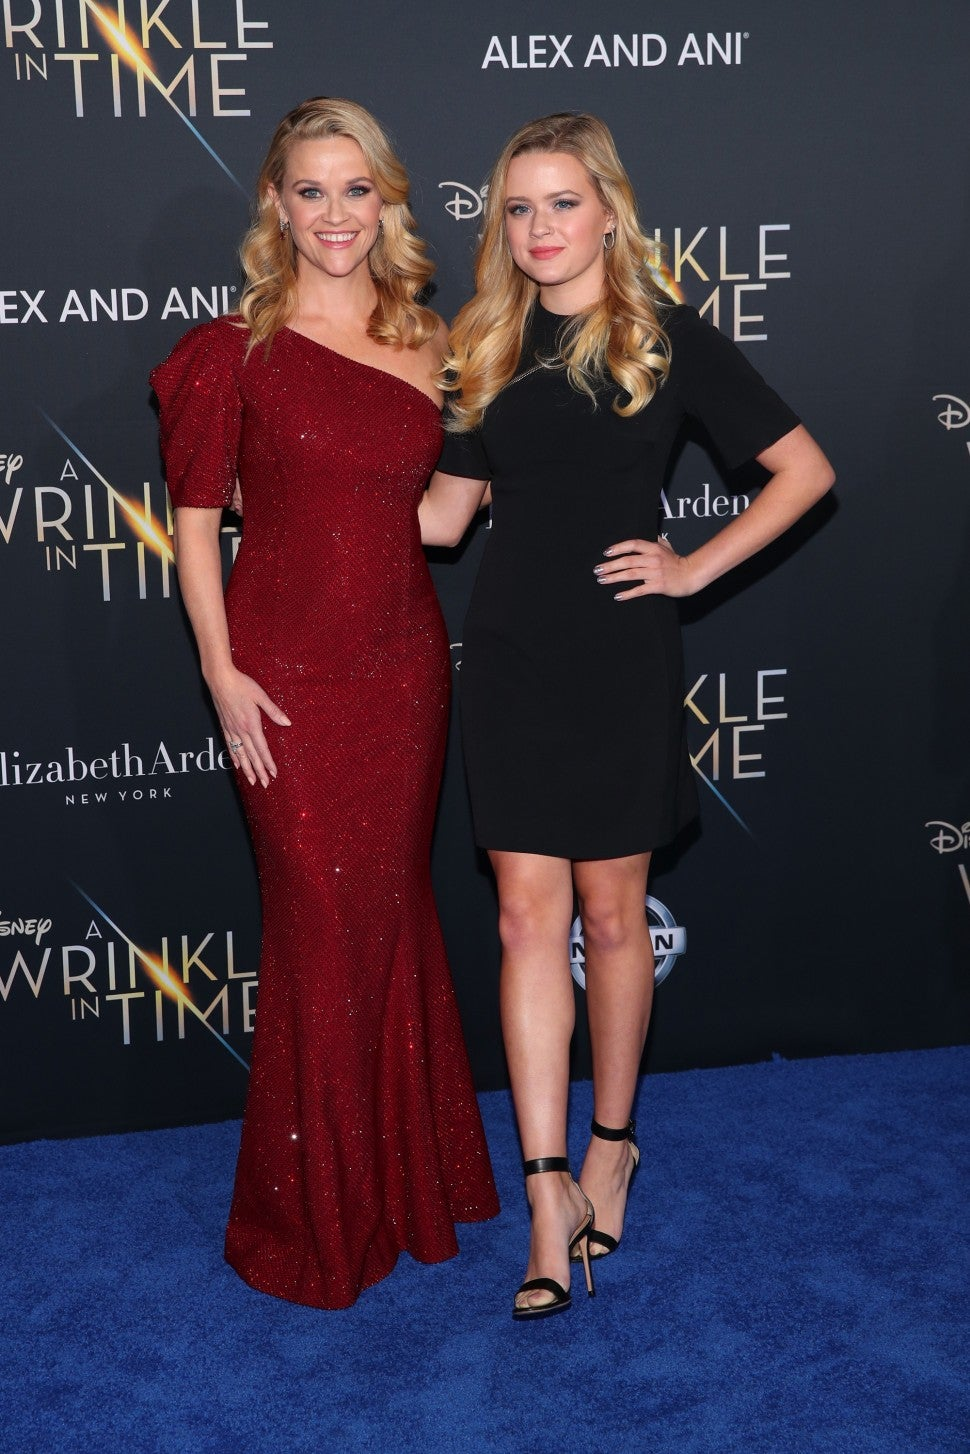 Reese Witherspoon and Ava Phillippe at A Wrinkle In Time premiere